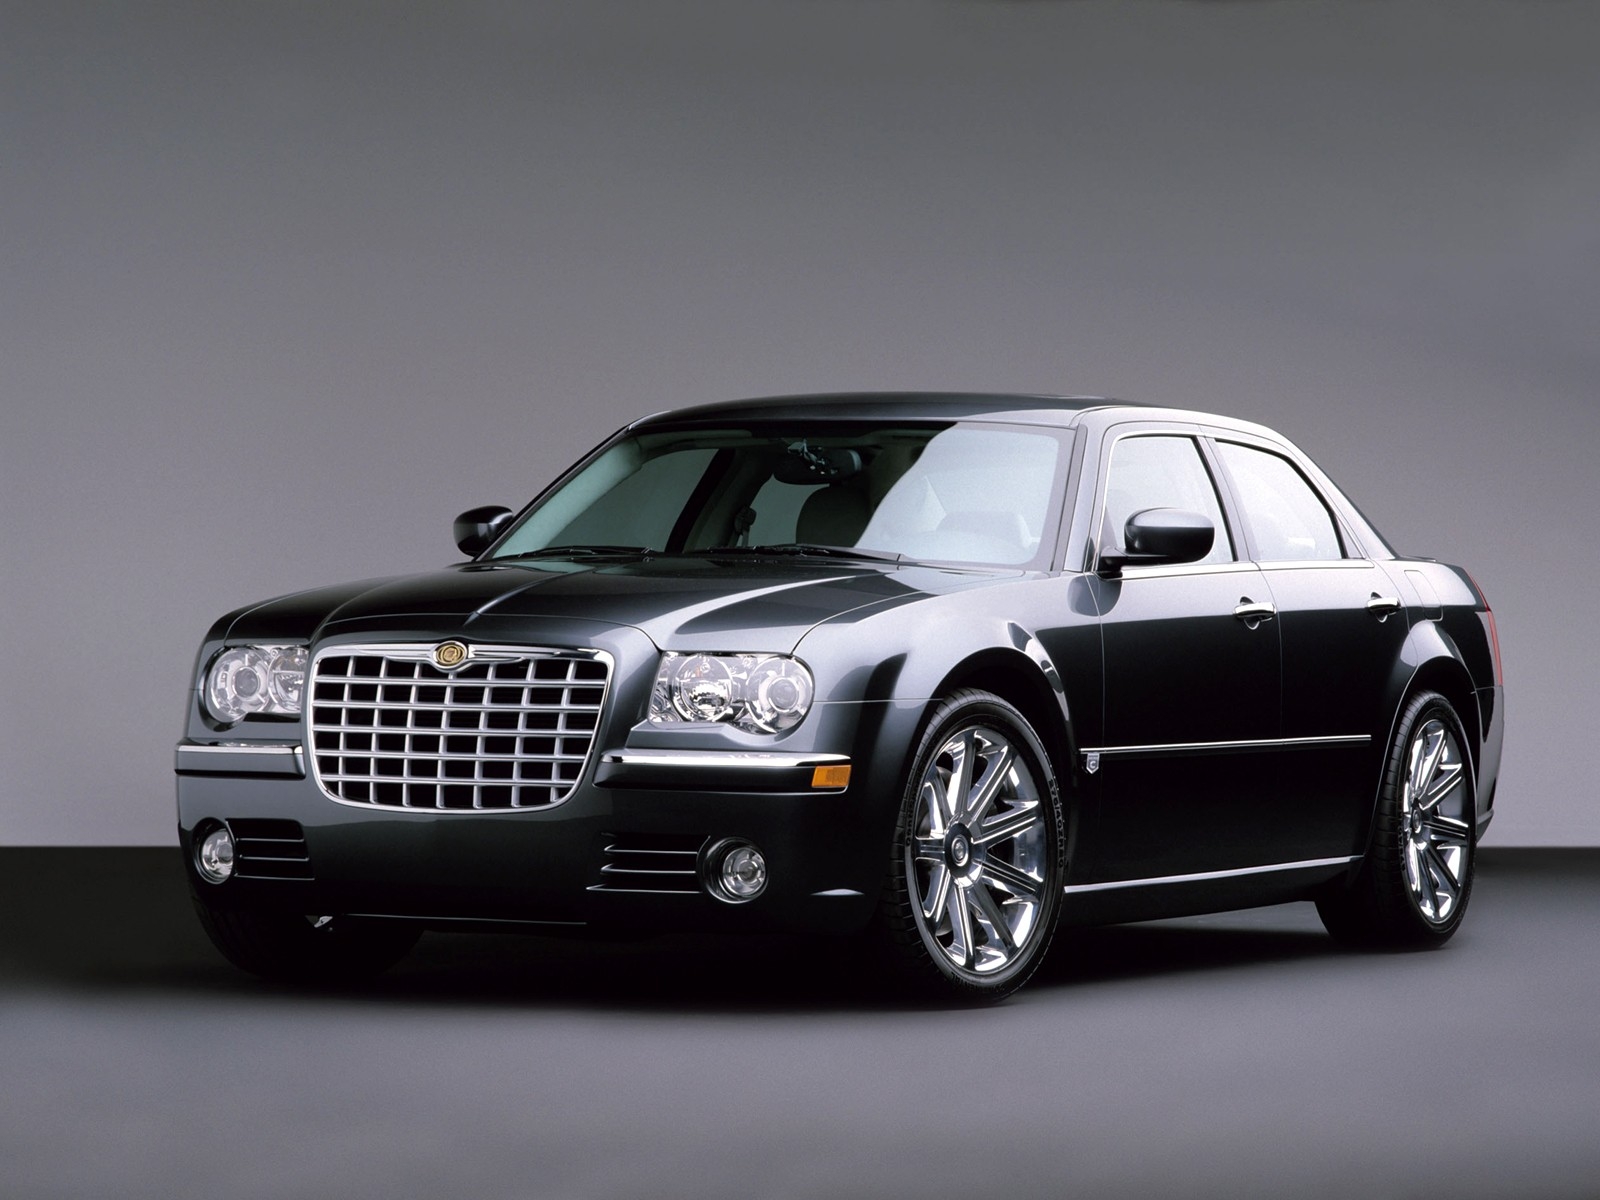 Picture of 2009 Chrysler 300 C HEMI